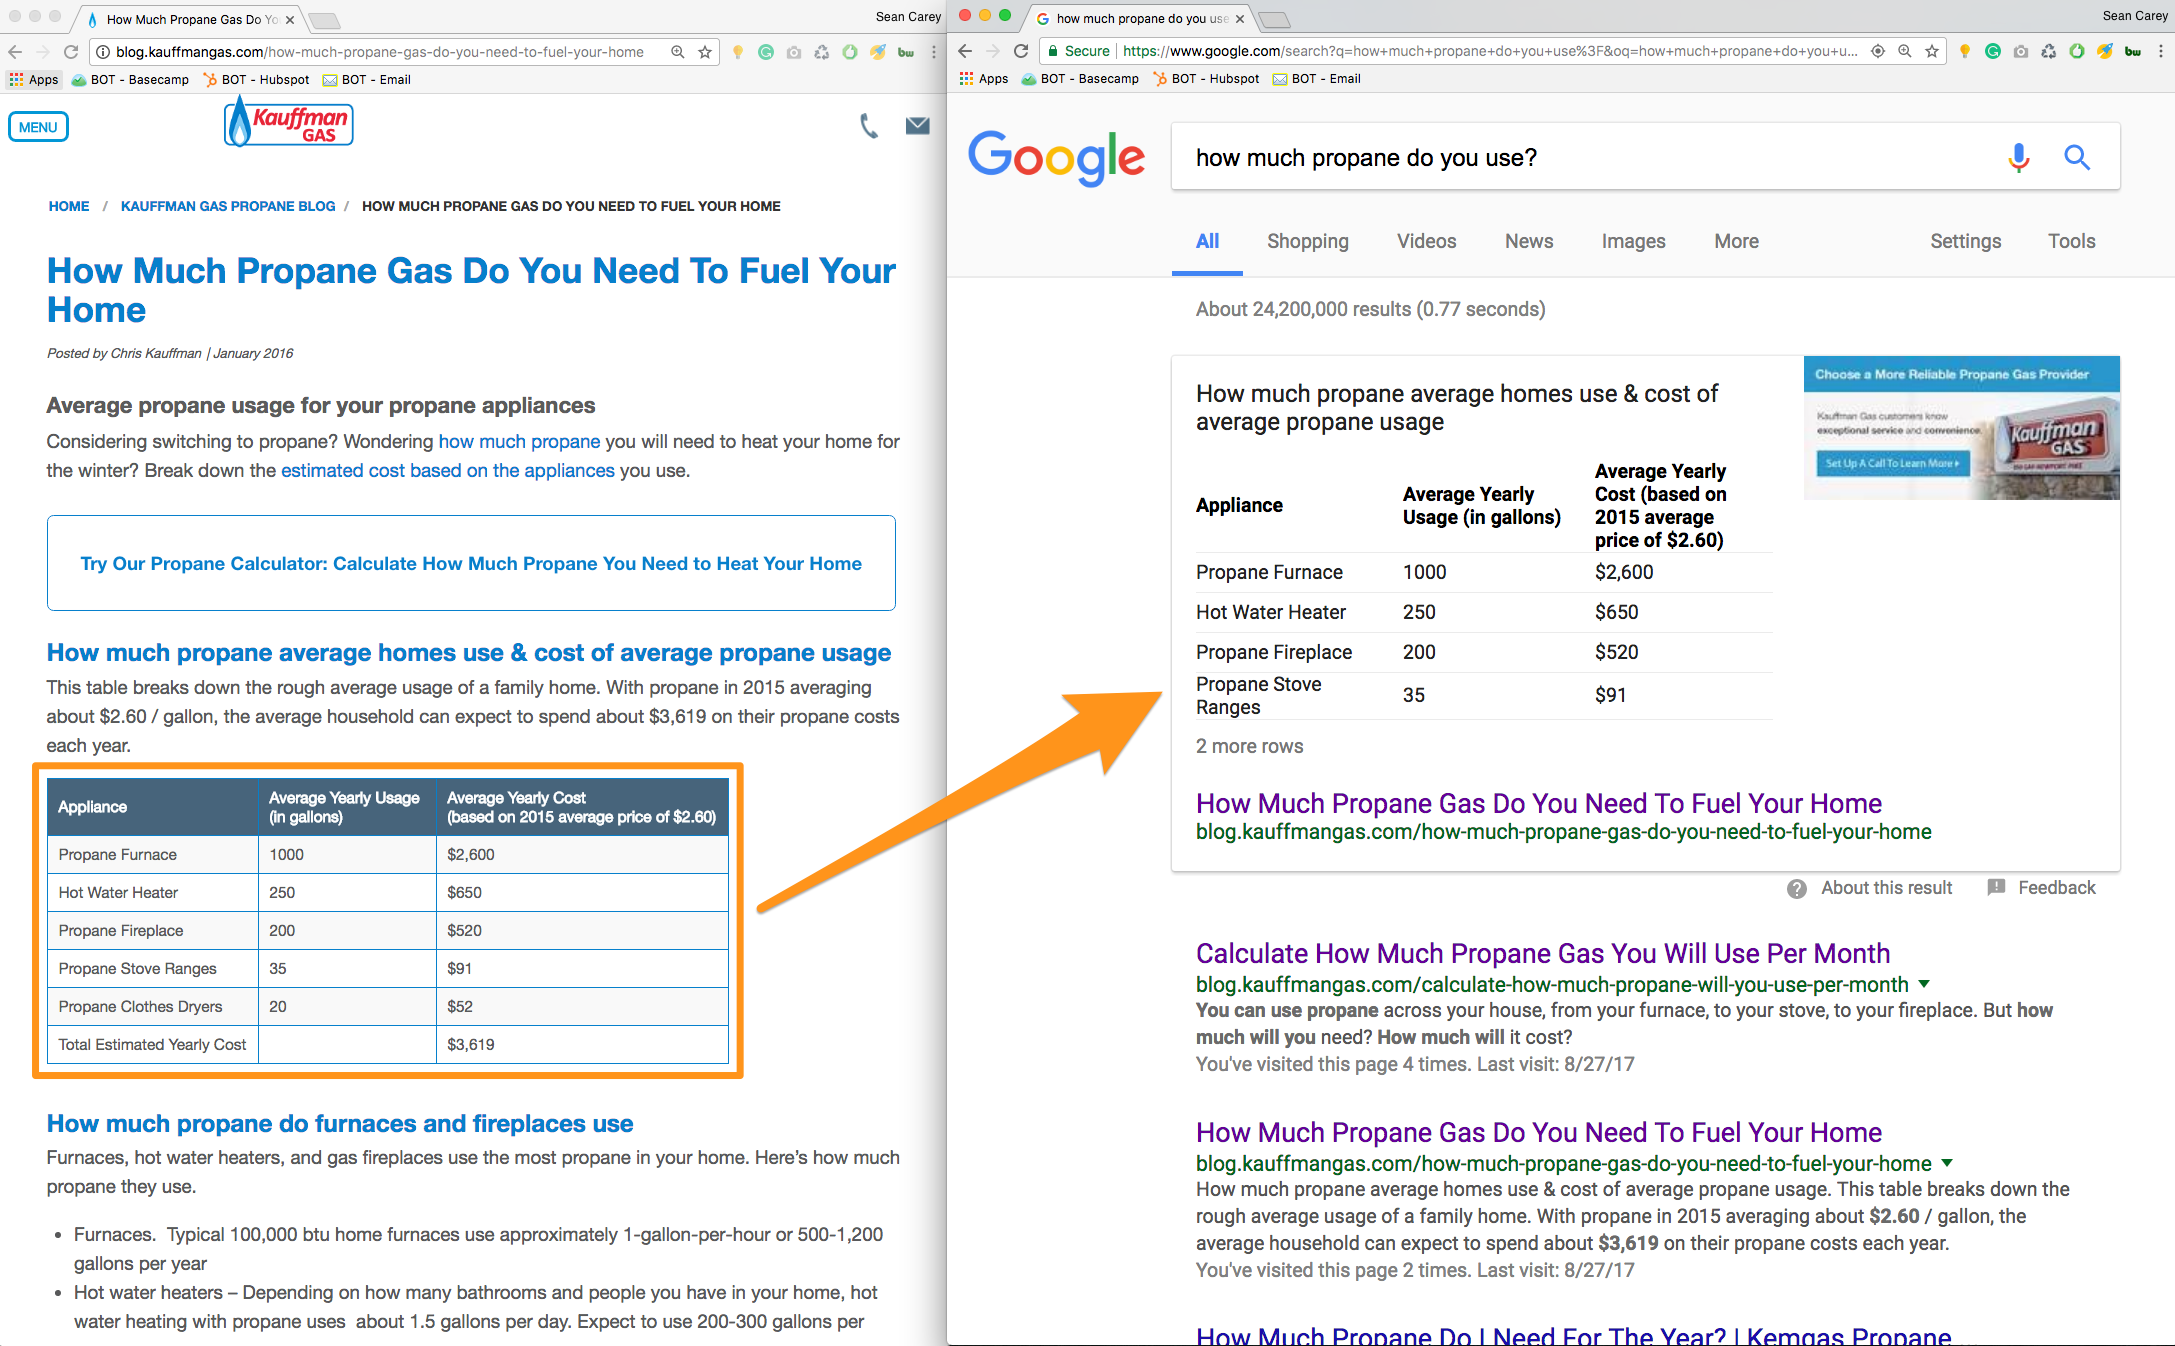 kauffman-gas-case-study-google-featured-snippet-extracting-data.png